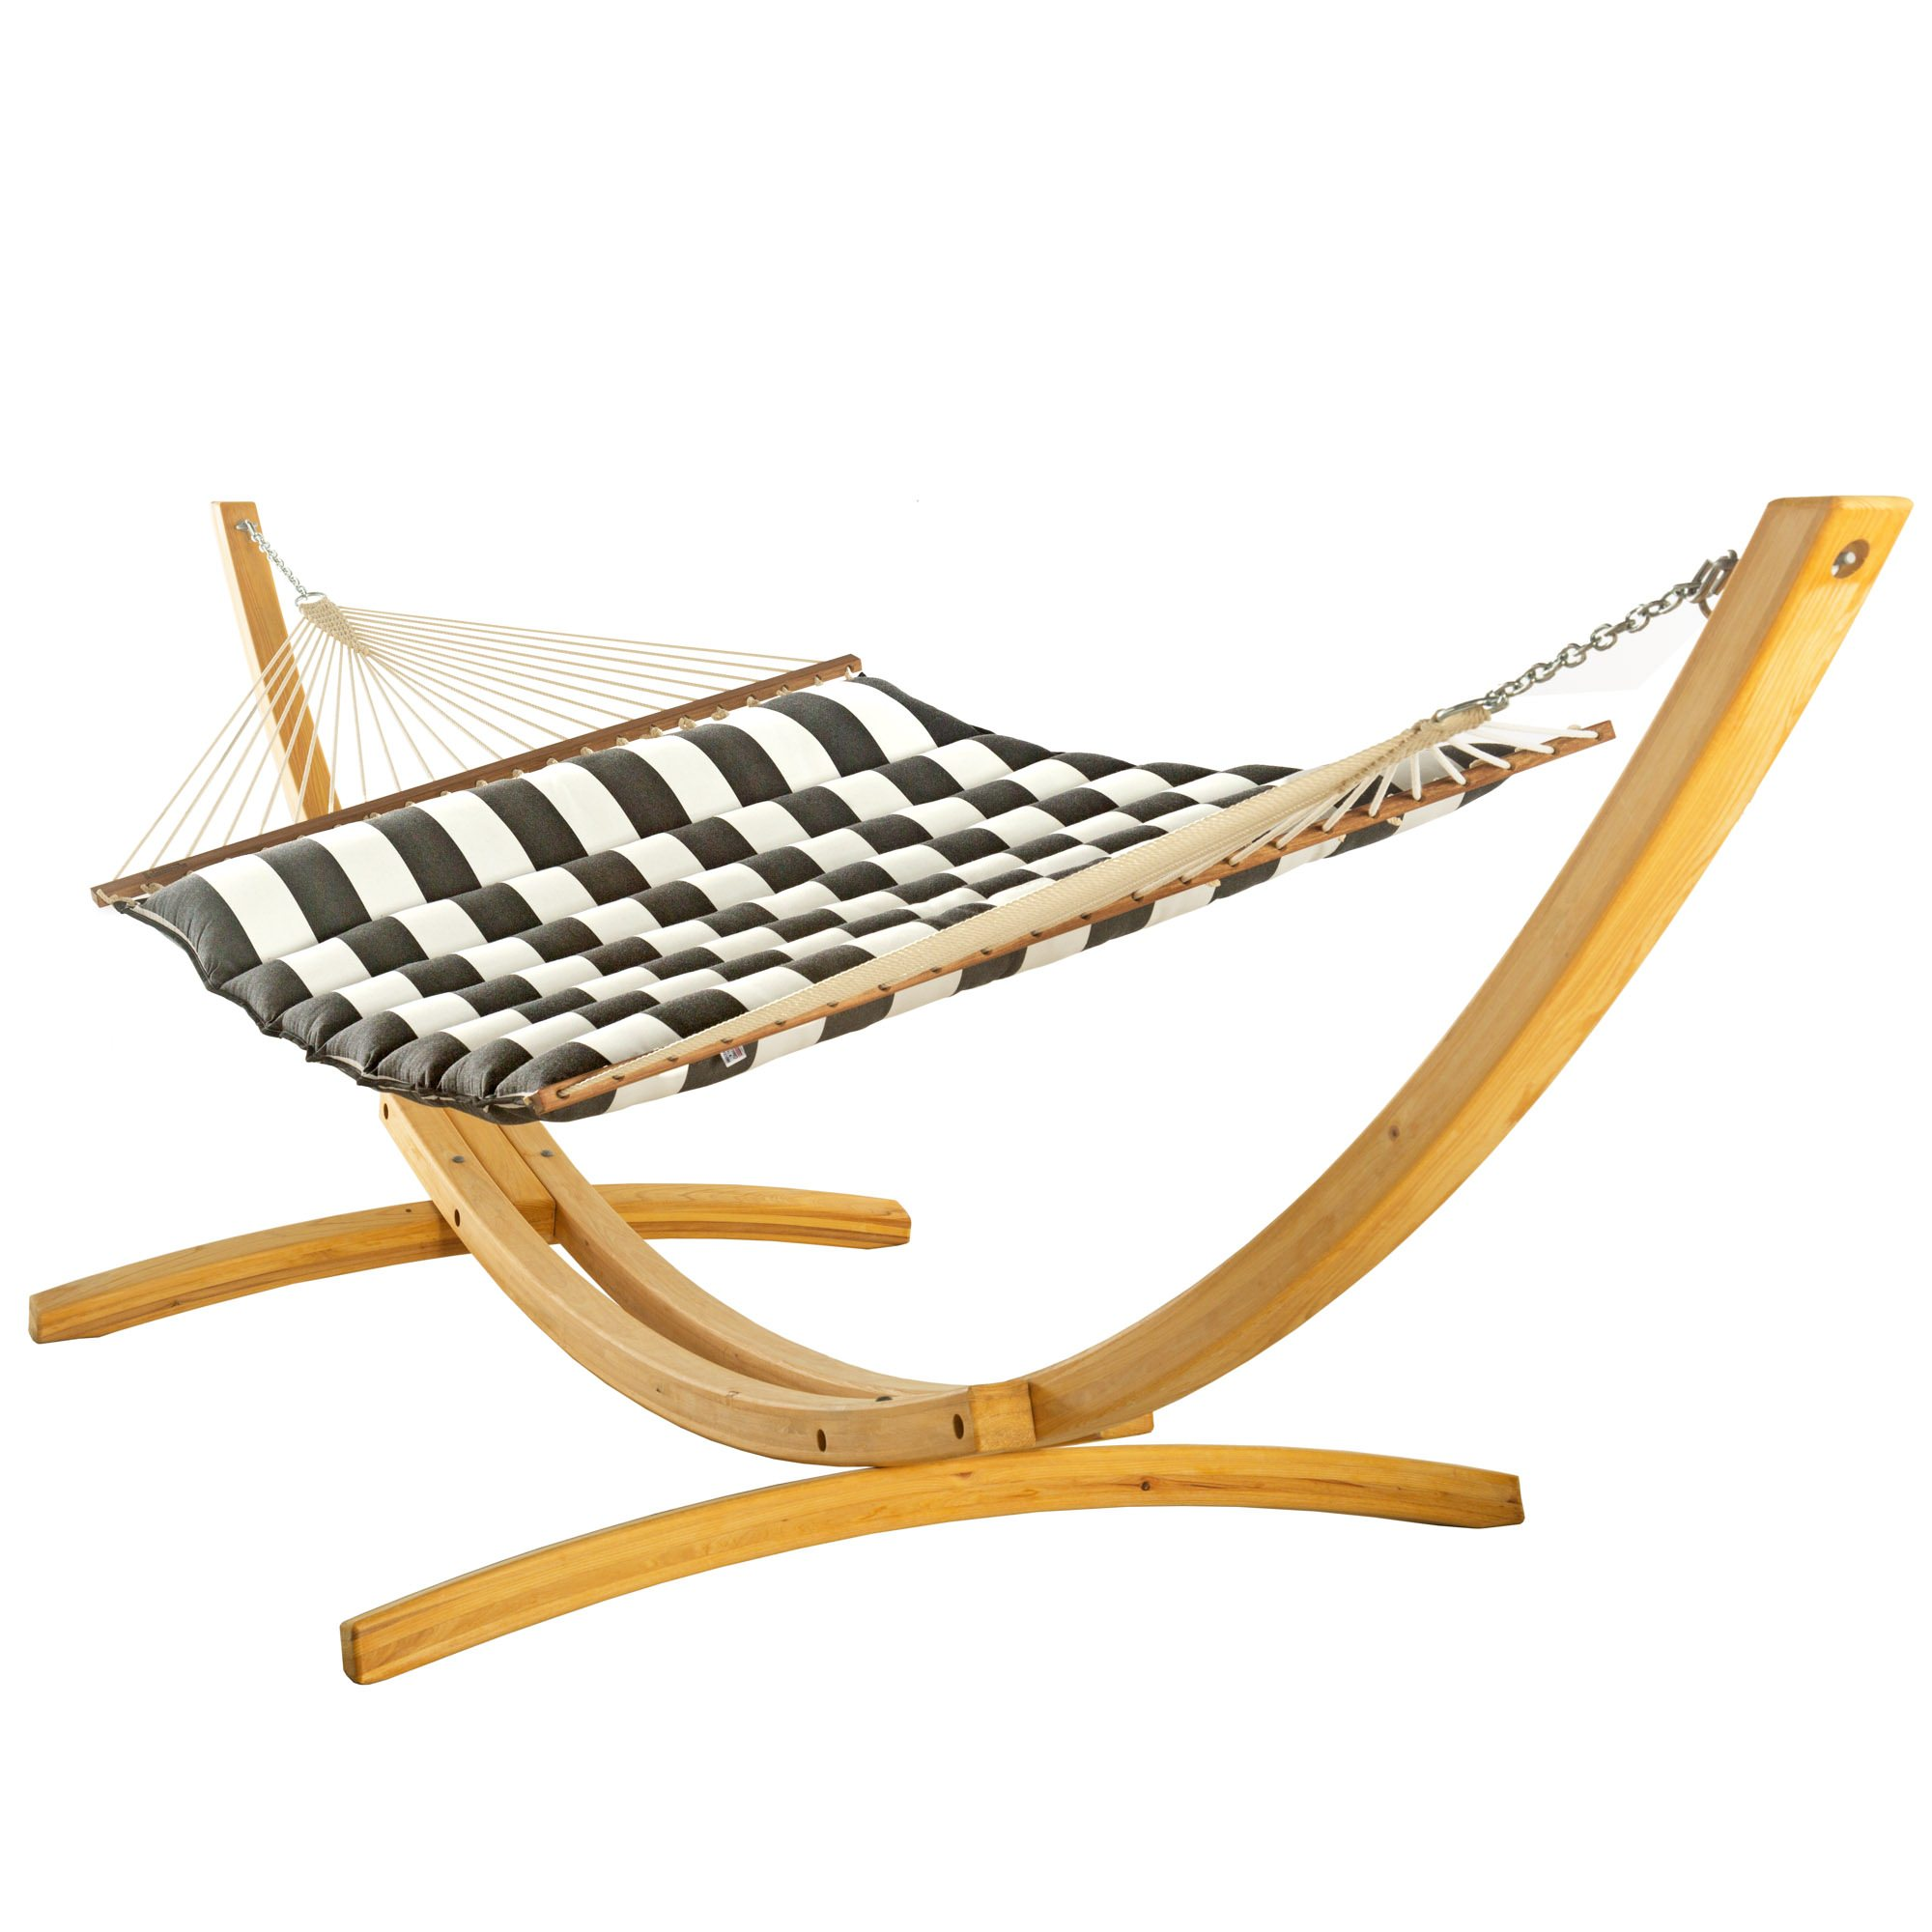 Pillowtop Hammock - Cabana Classic by Hatteras Hammocks